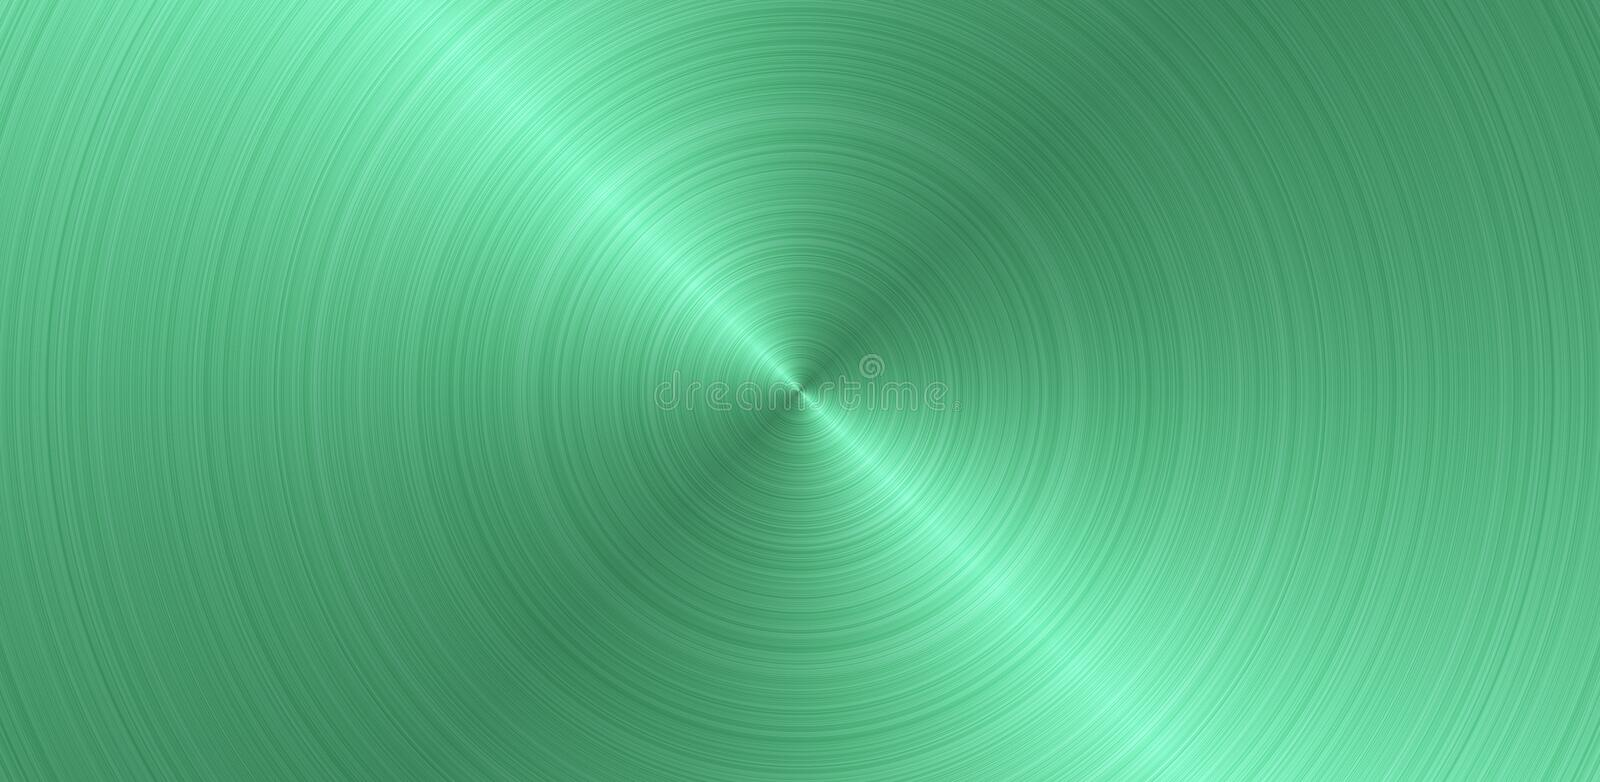 Brushed circular green metal surface. Texture of metal. Abstract steel panoramic background.  vector illustration